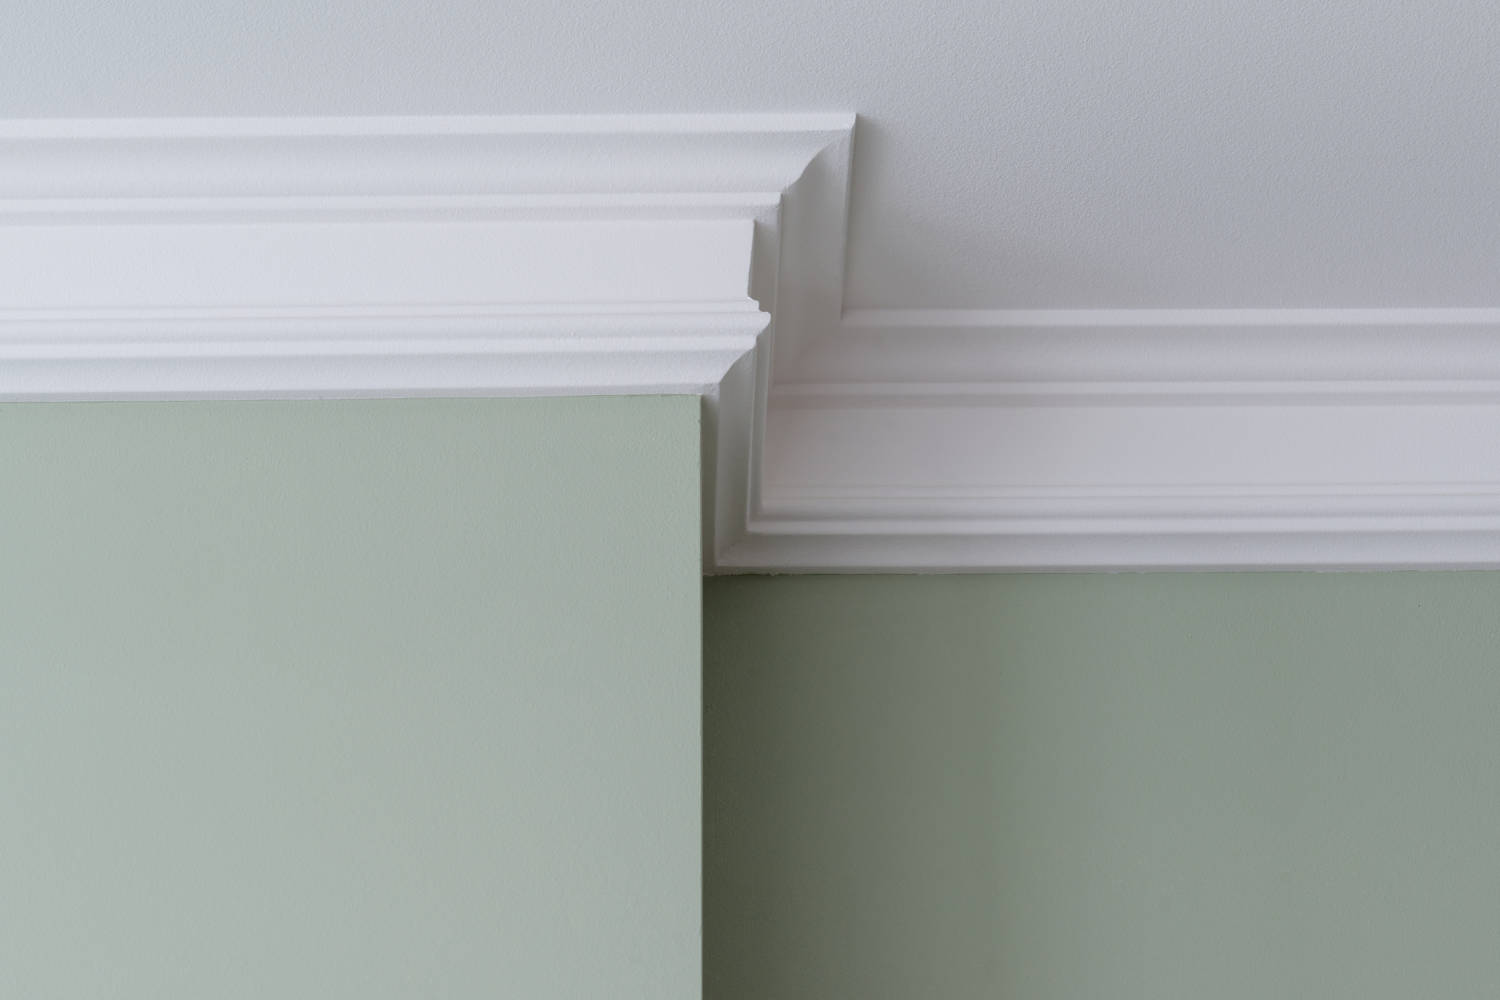 newly installed crown molding surrounding the perimeter of a room